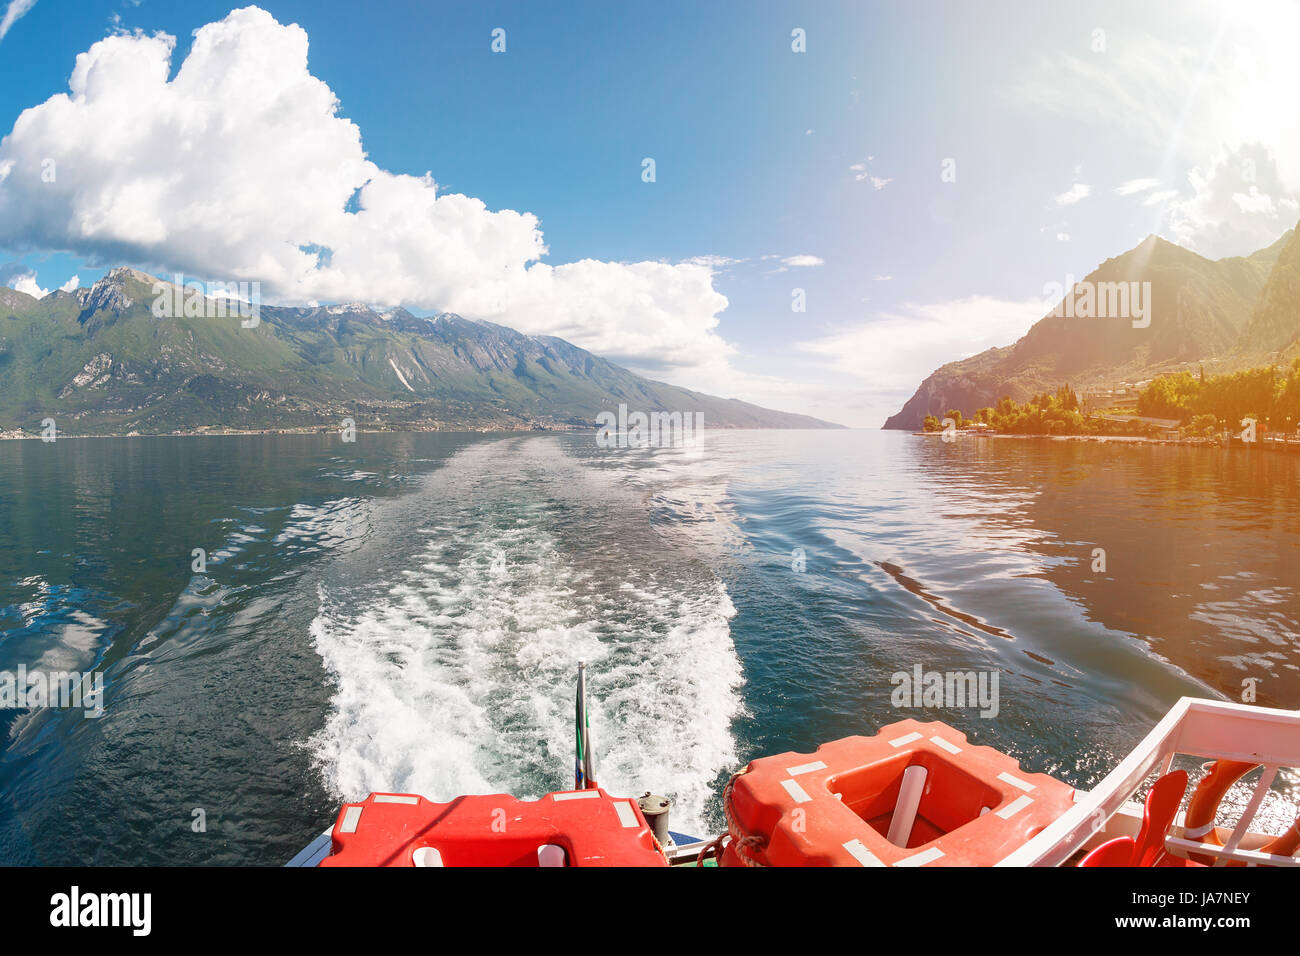 Lake Garda is the largest lake in Italy. It is located in Northern Italy, about half-way between Brescia and Verona, - Stock Image